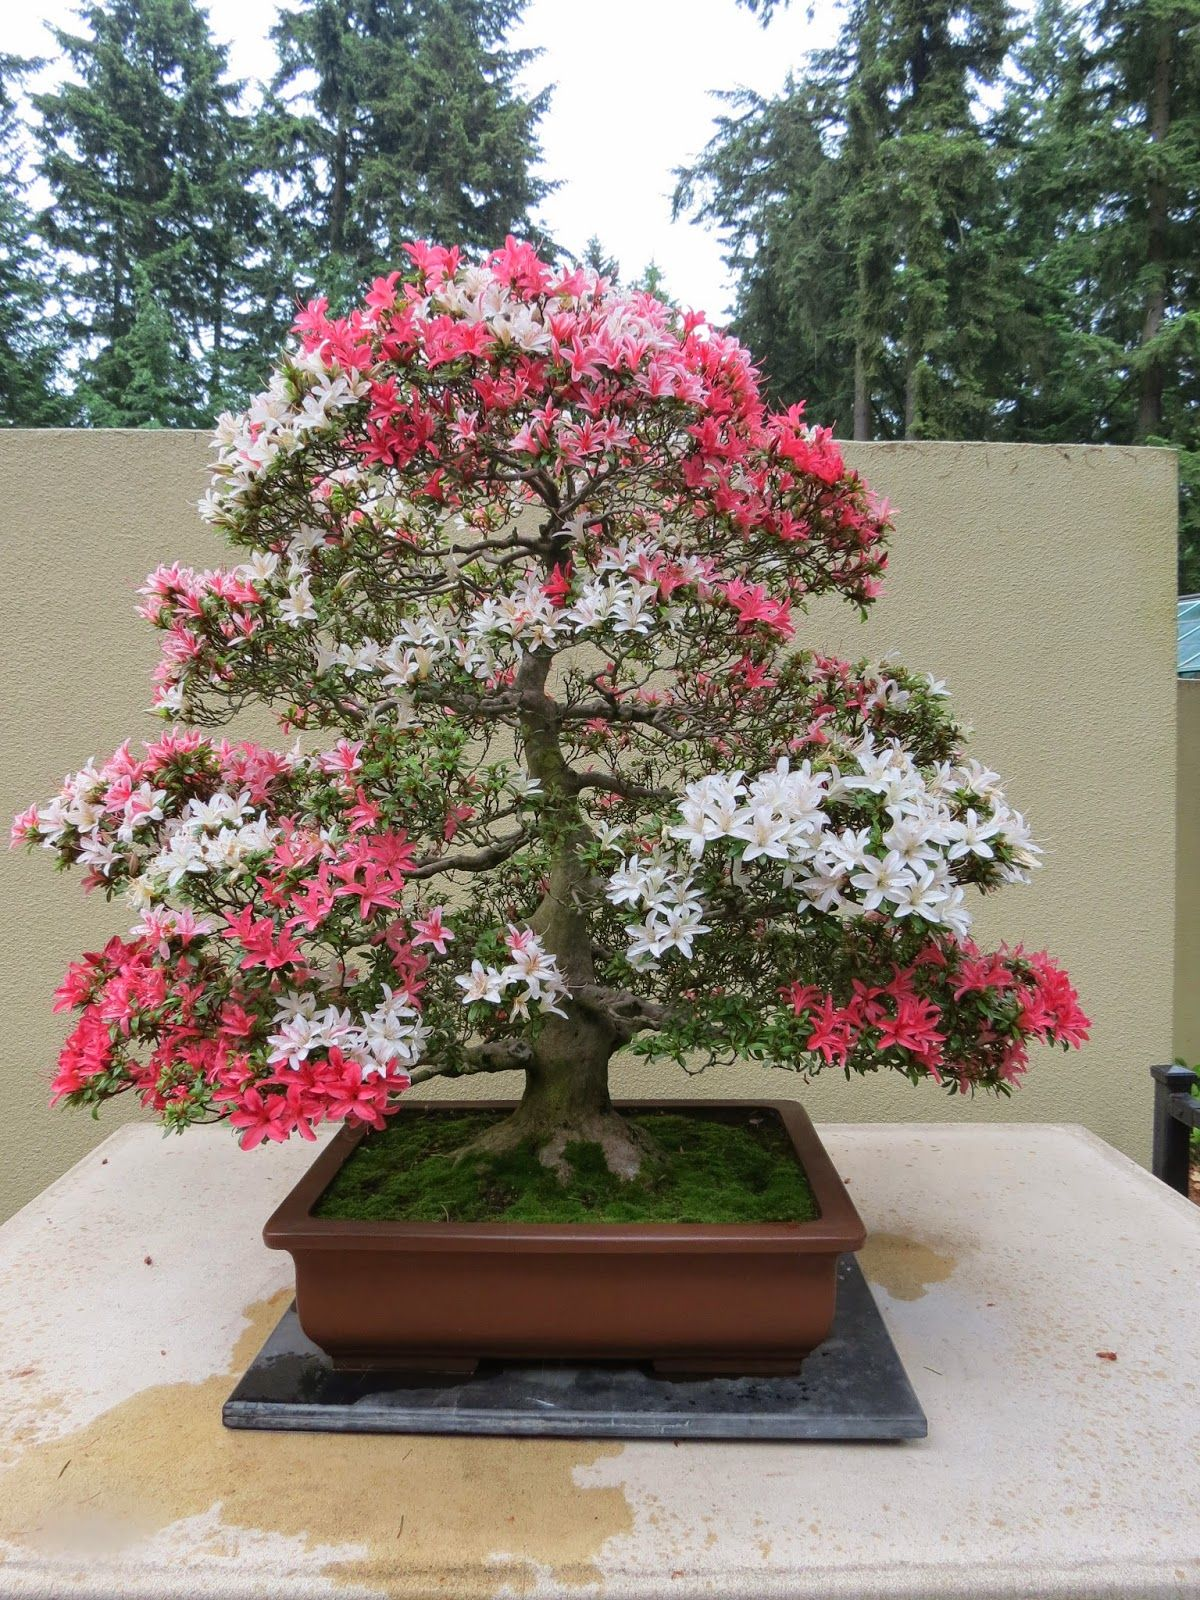 Rhododendron Care How To Grow Beautiful Rhododendrons and